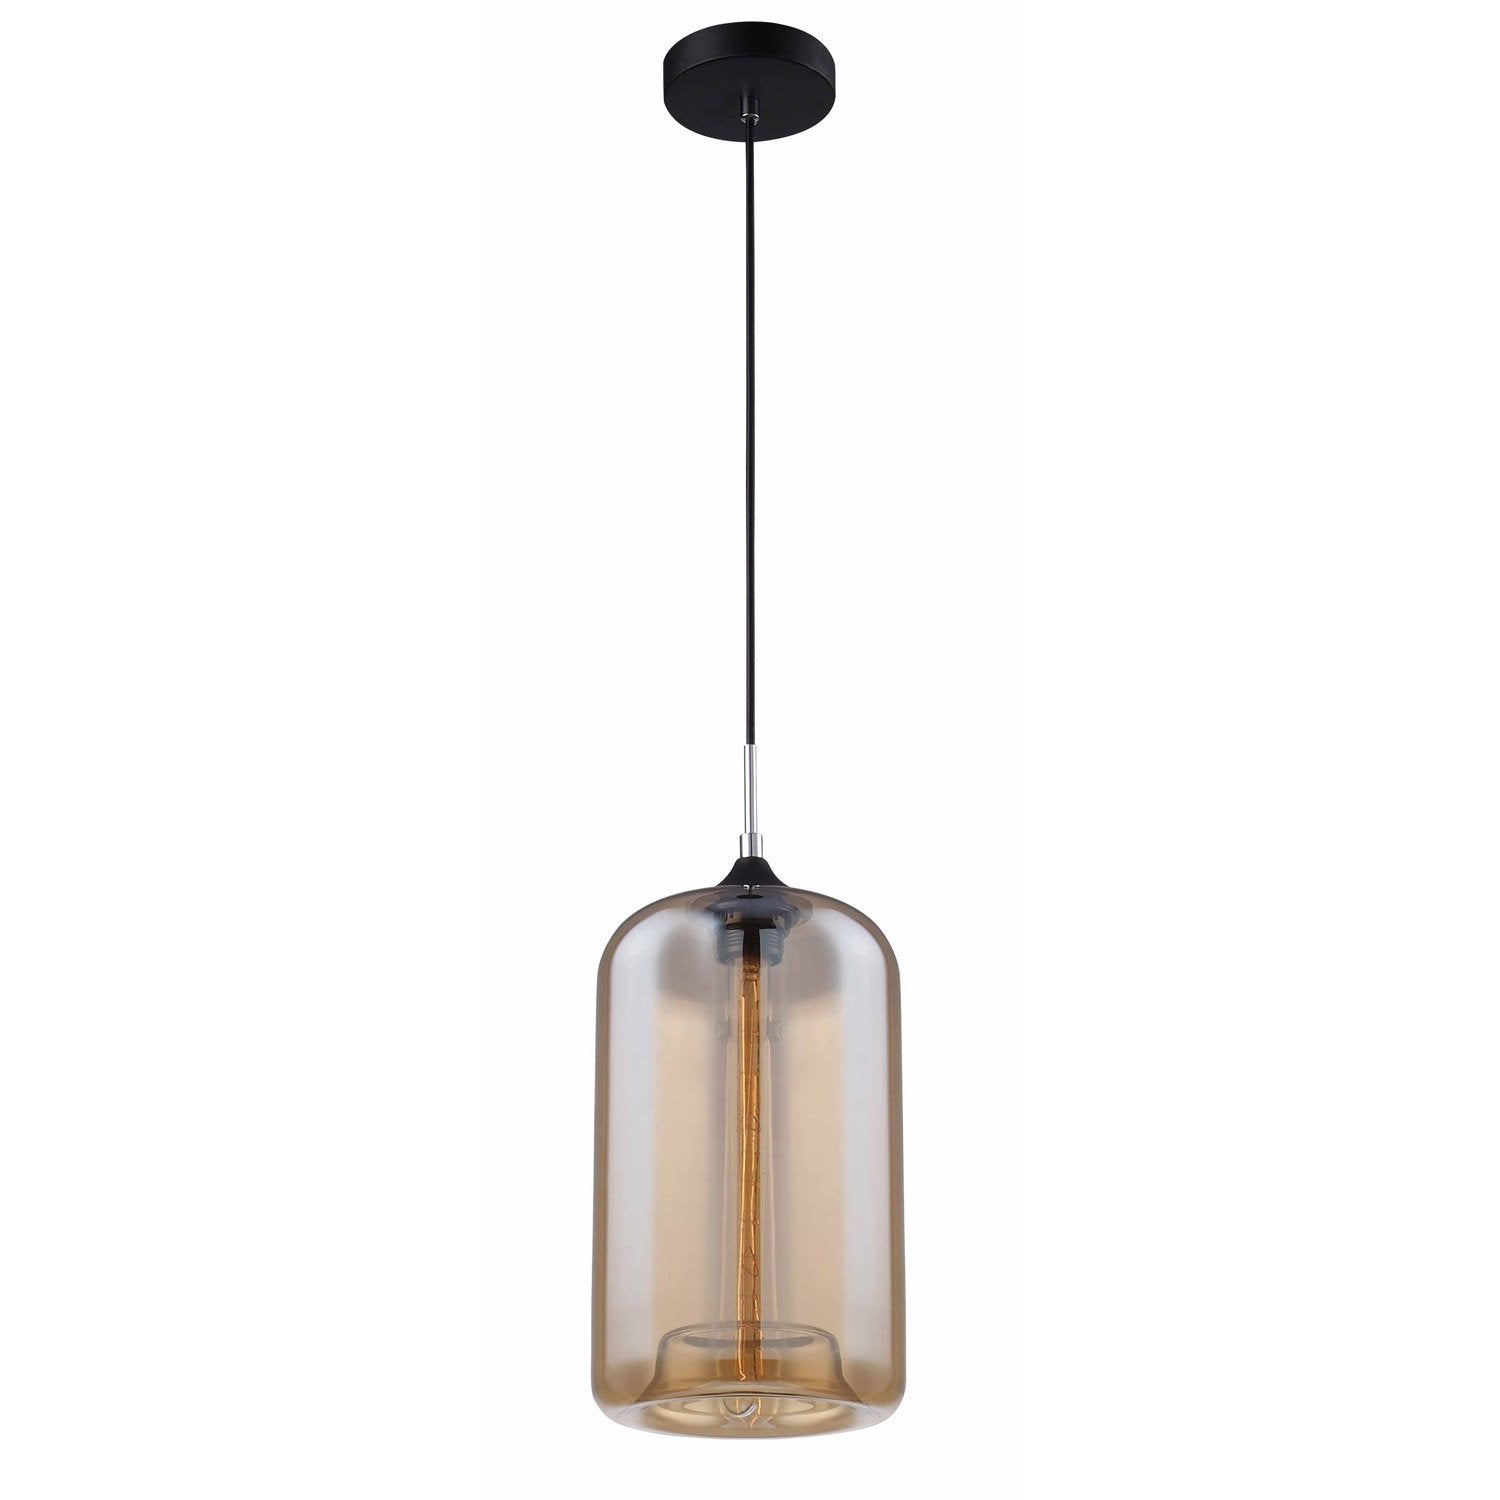 Suspension e27 style industriel soho verre fum 1 x 40 w lussiol leroy merlin - Suspensions leroy merlin ...